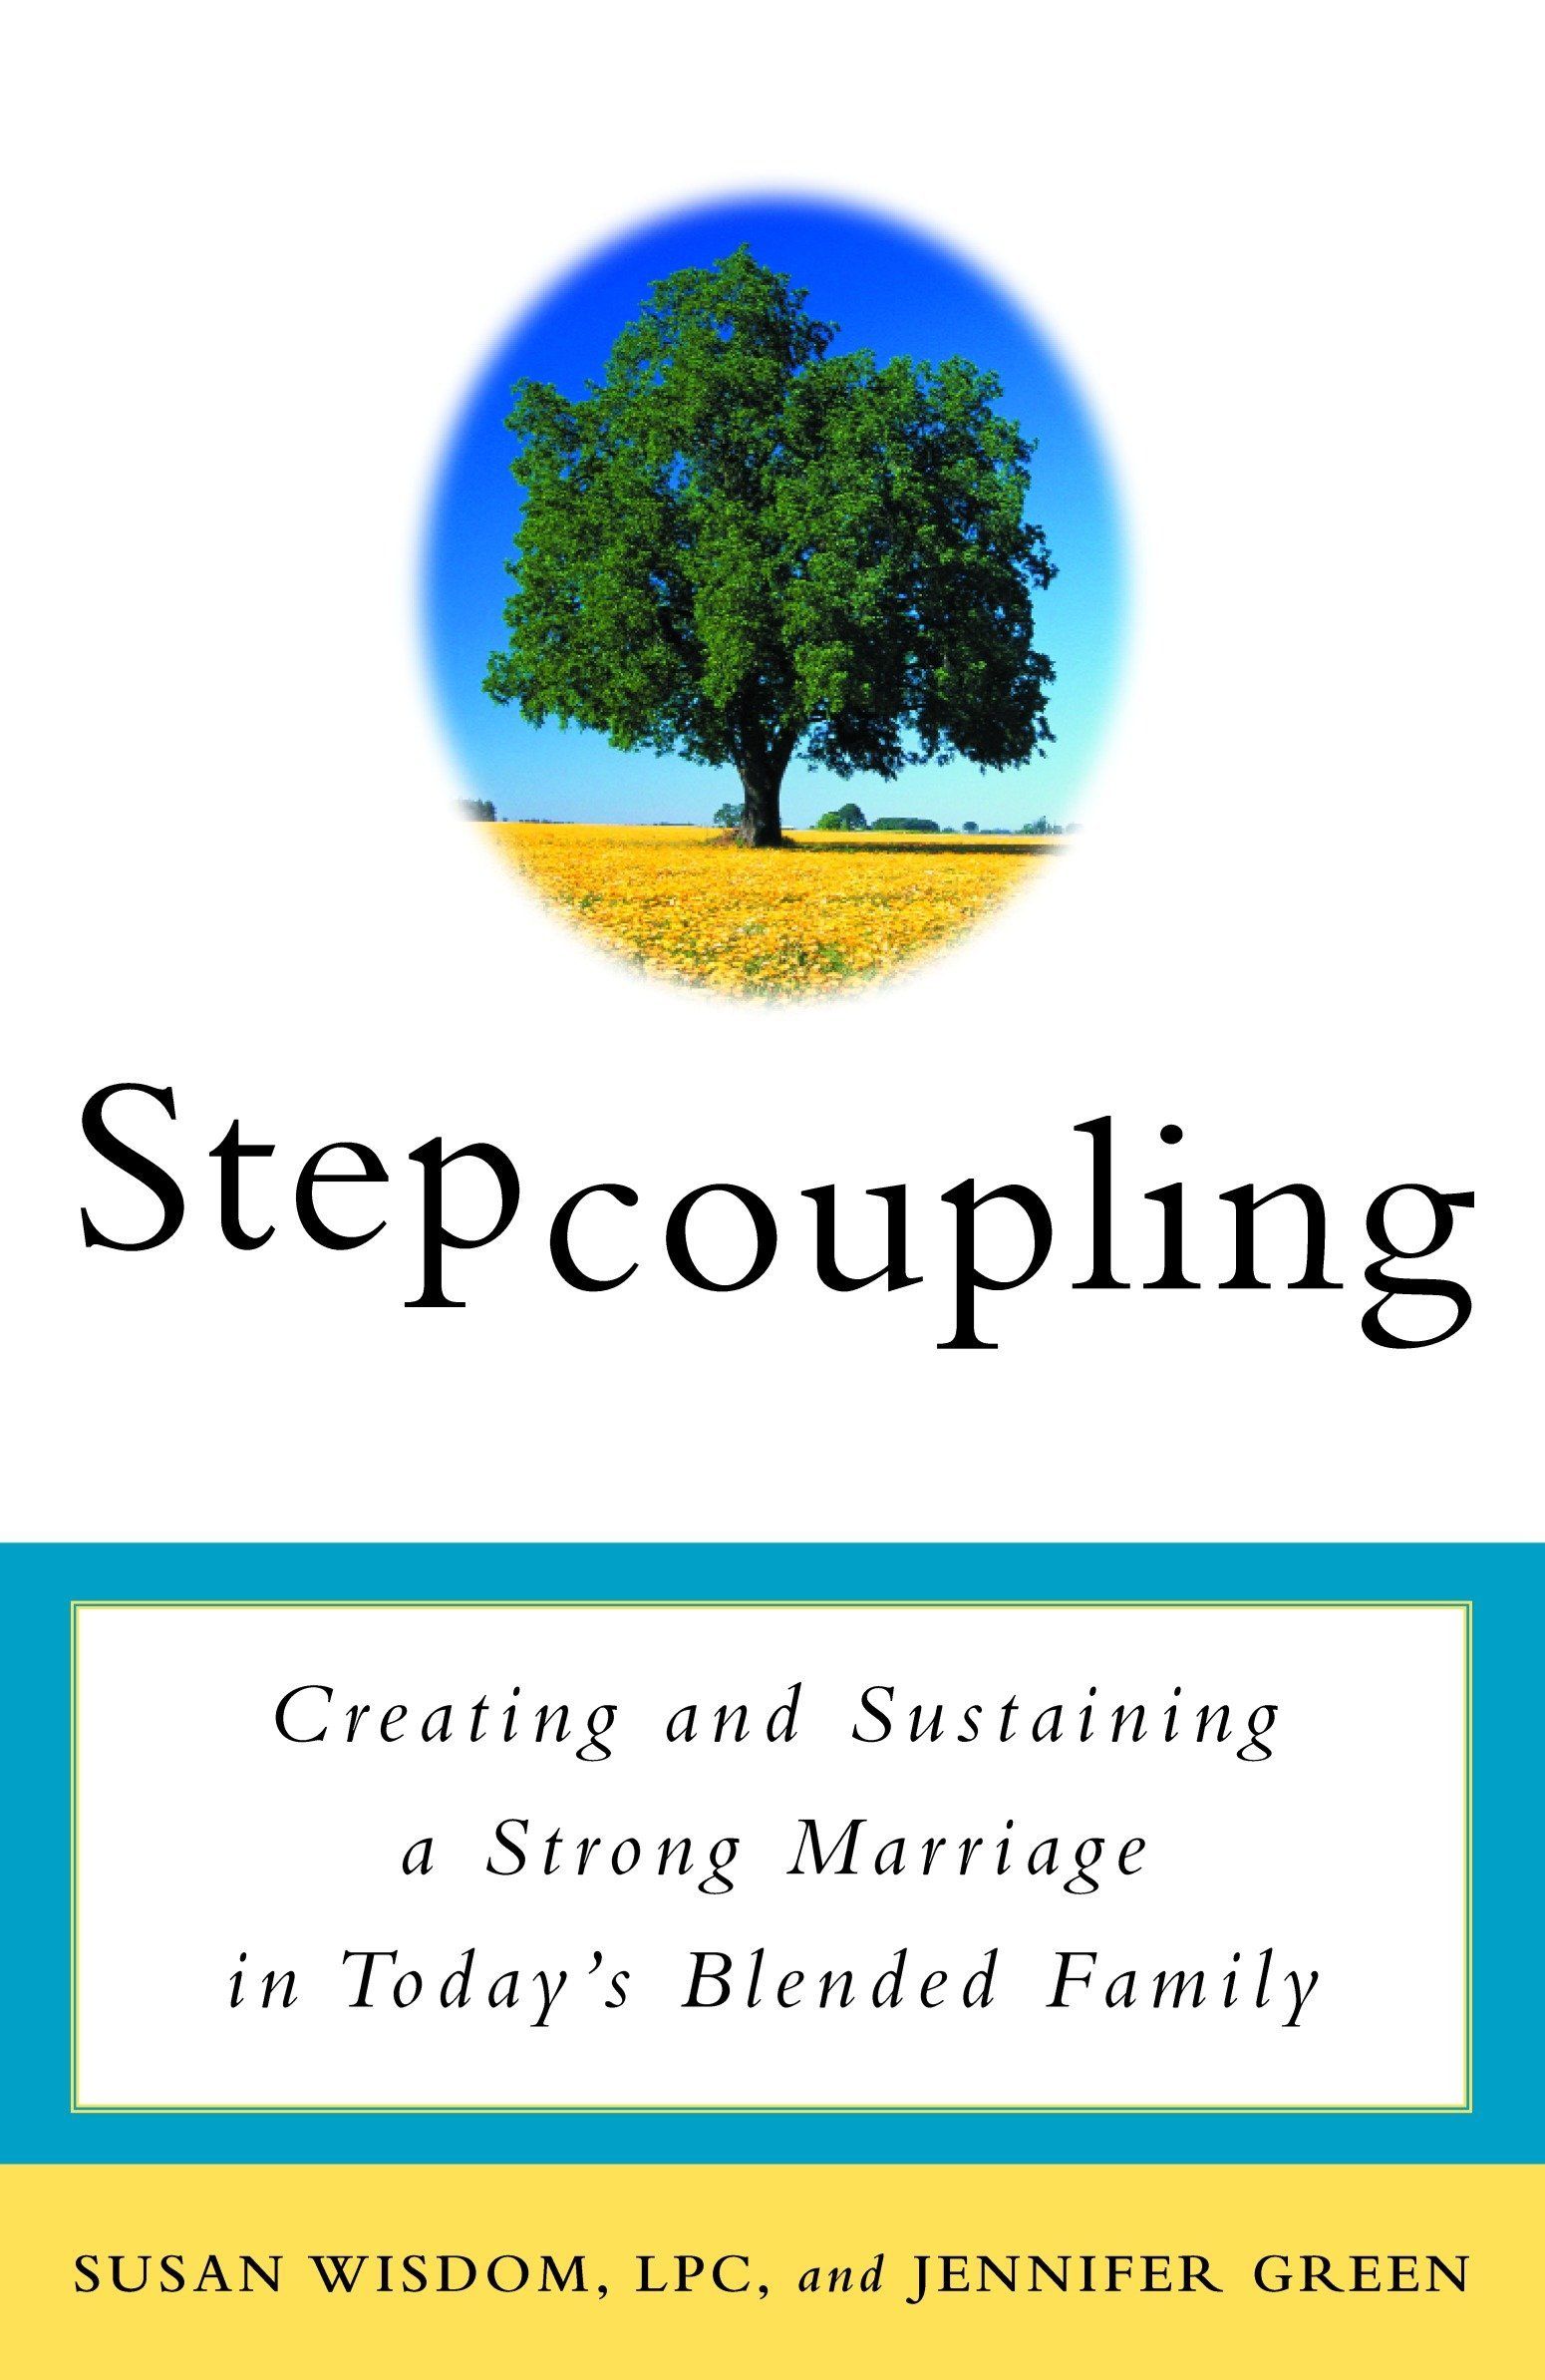 Stepcoupling: Creating and Sustaining a Strong Marriage in